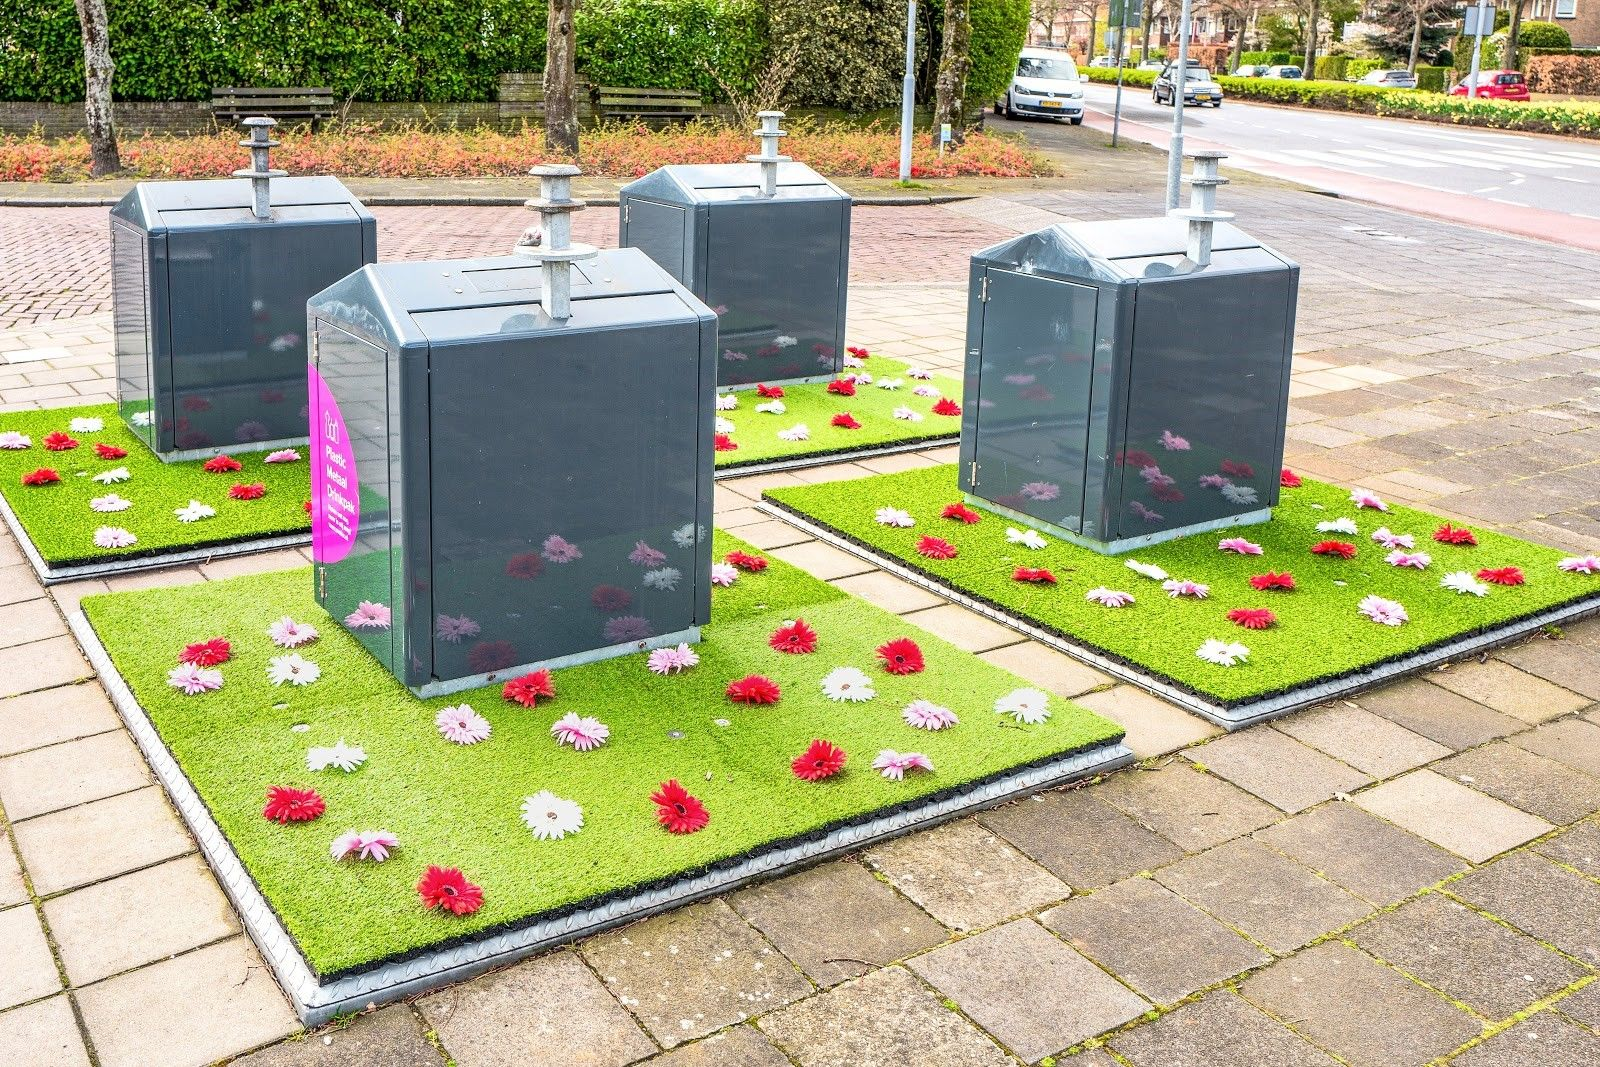 Kunstgras rondom afvalcontainers